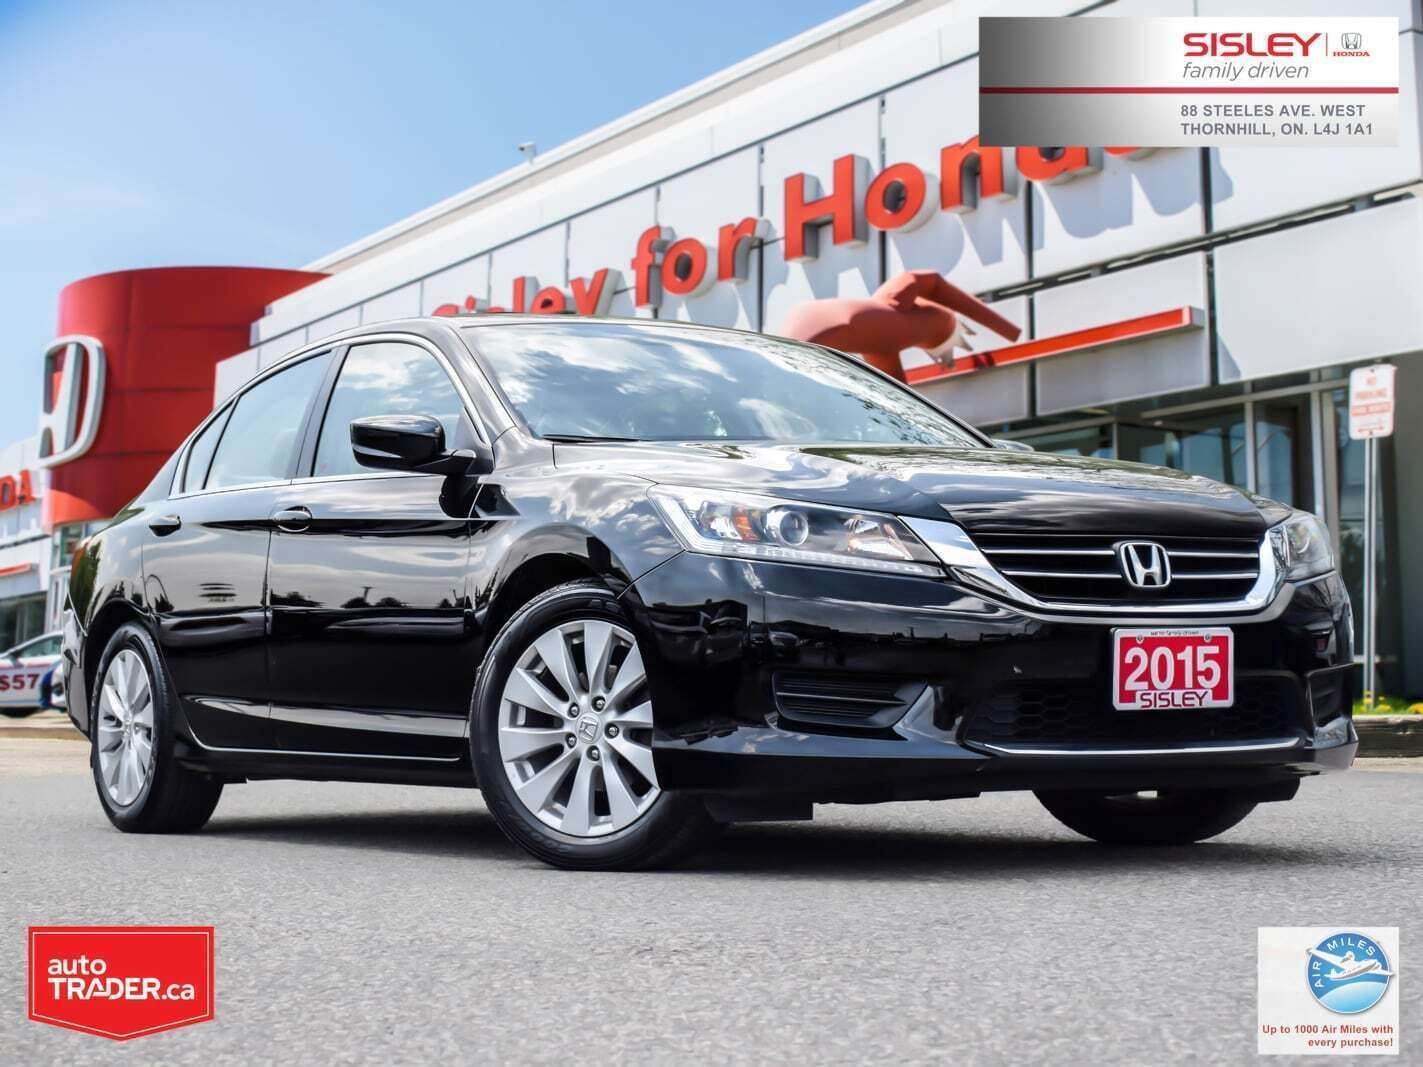 2015 Honda Accord Sedan Image